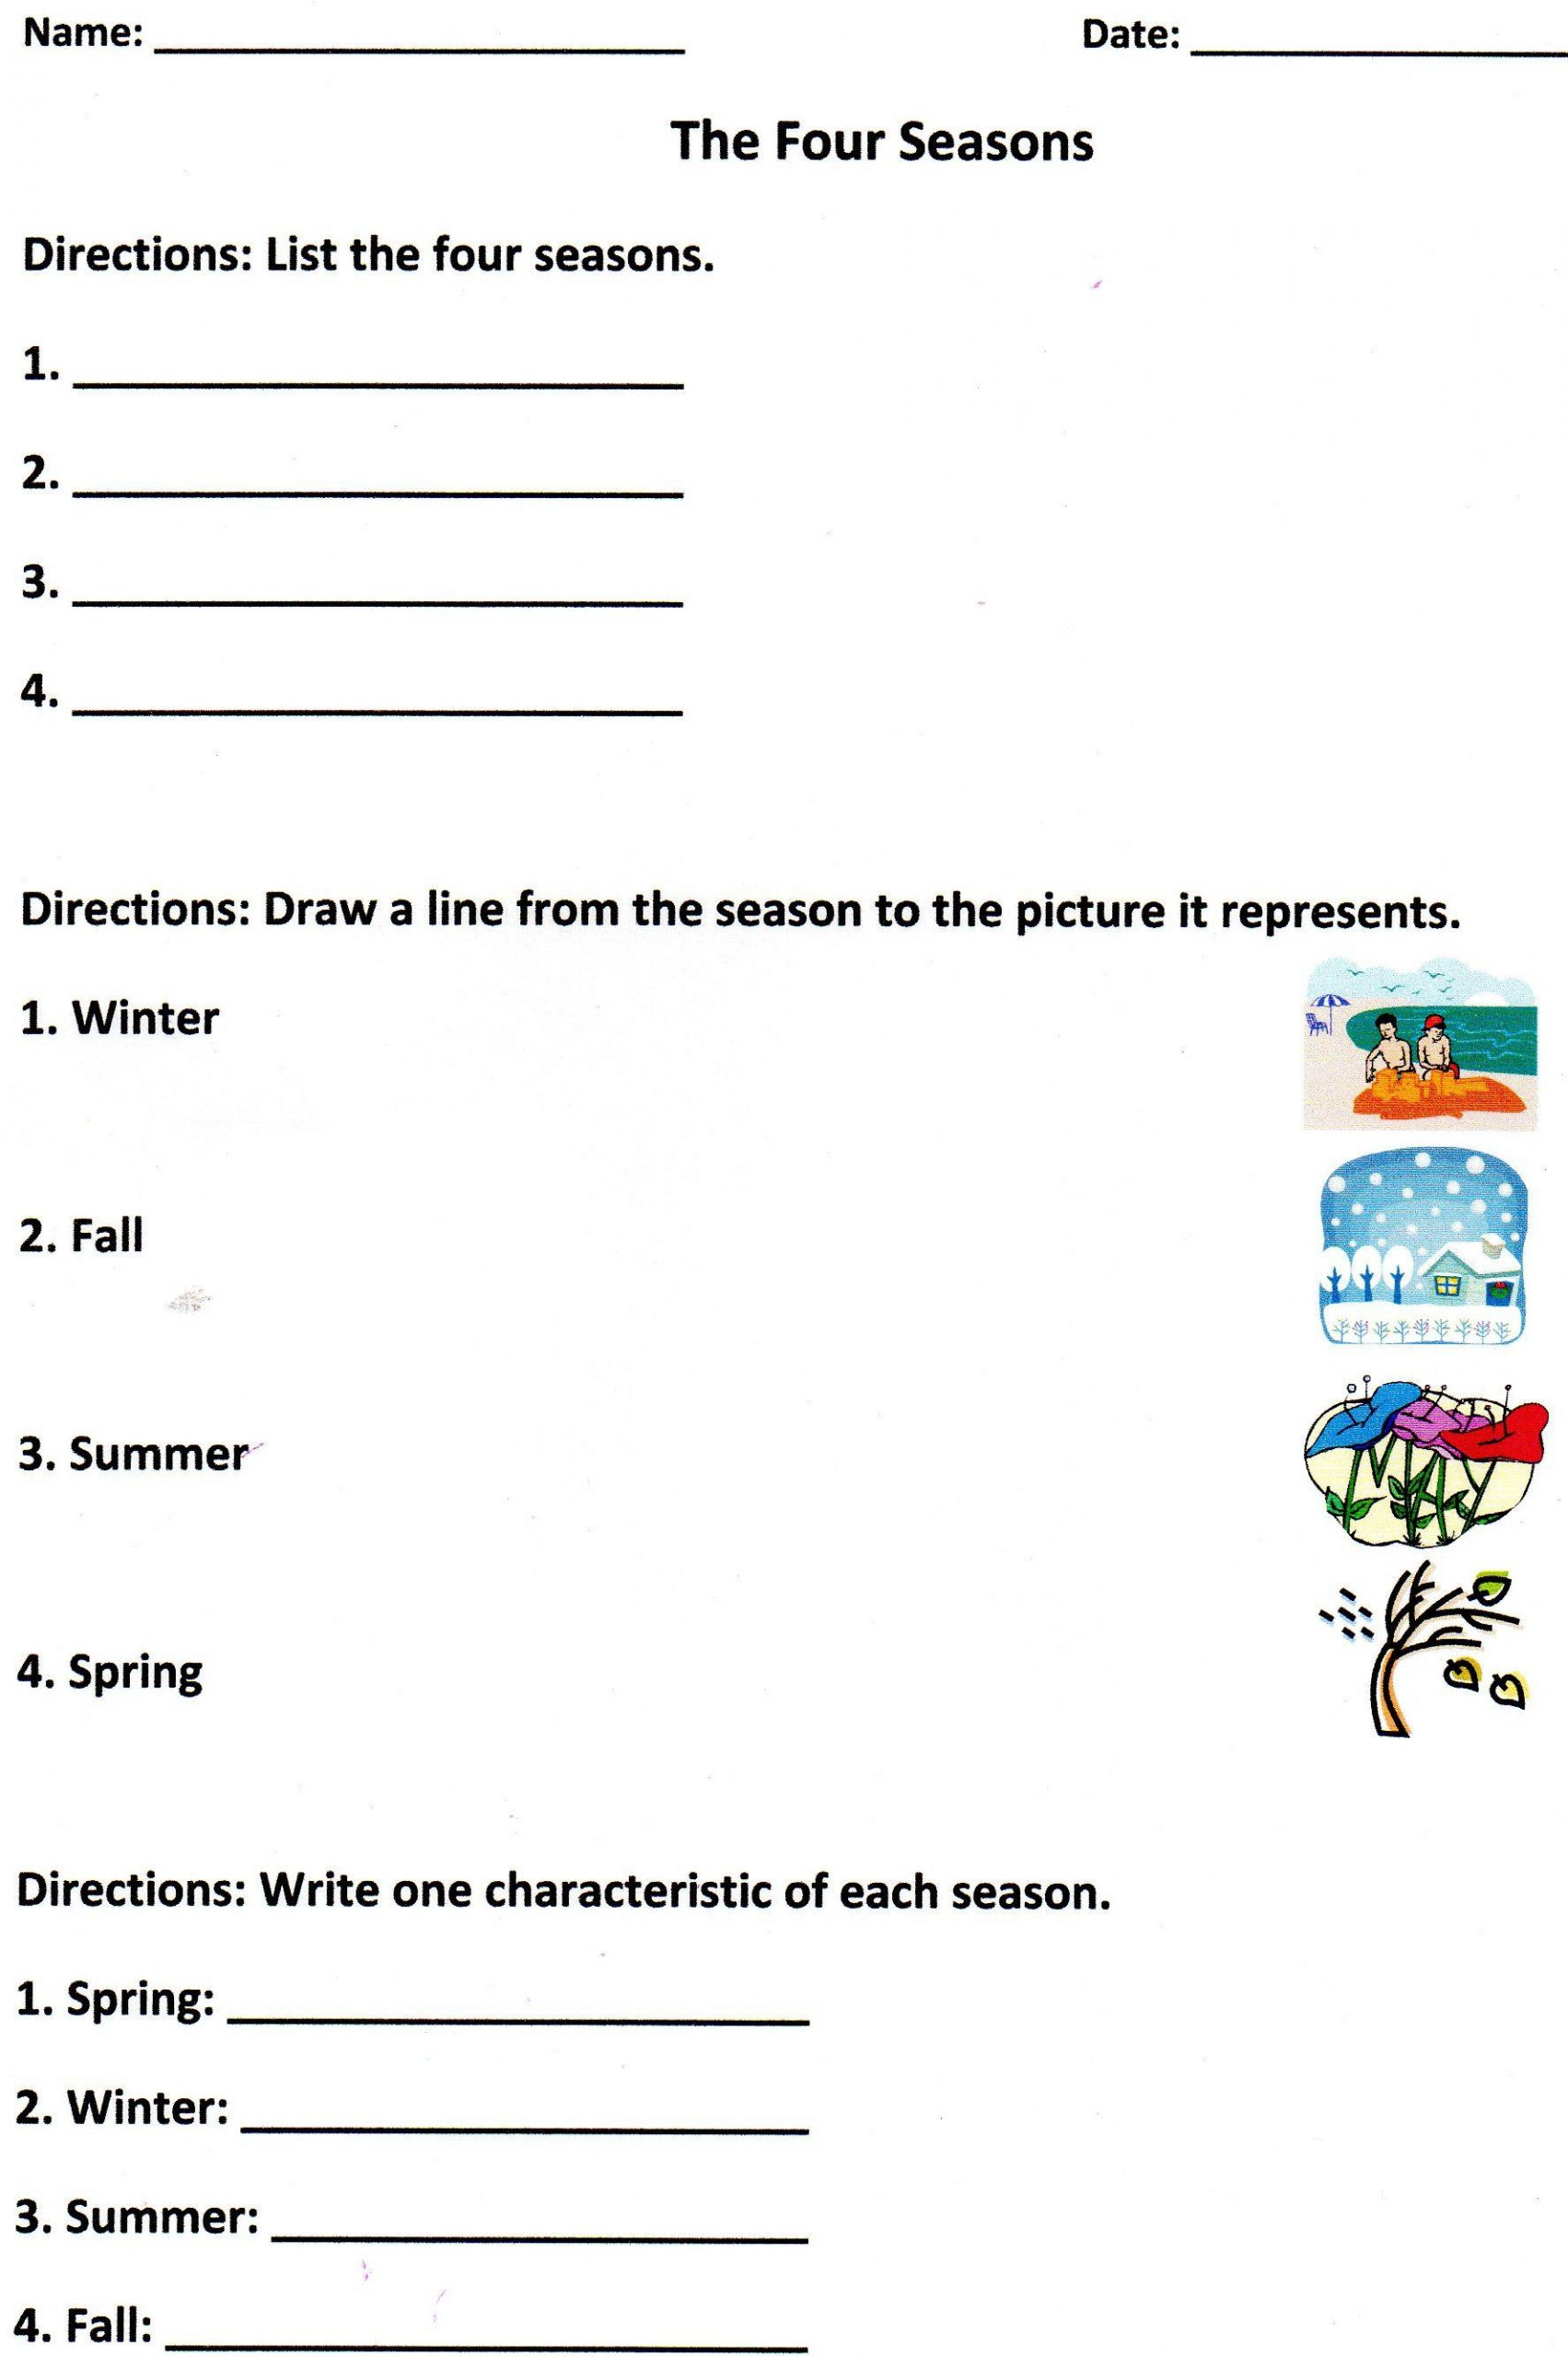 Science Worksheet 1st Grade the Four Seasons assessment for K 1